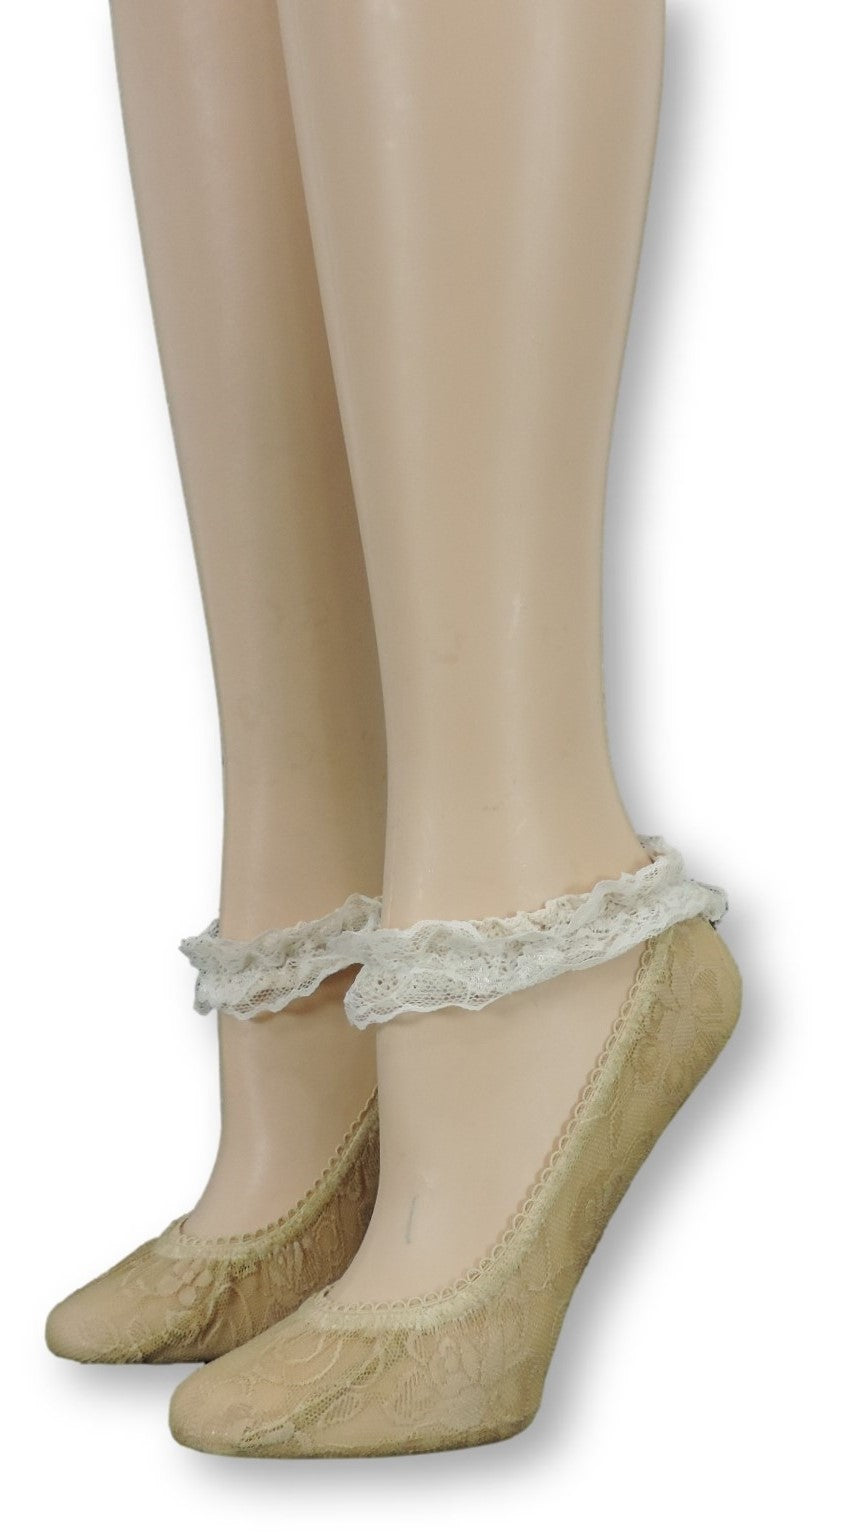 Golden Ankle Mesh Socks with Antique Lace - Global Trendz Fashion®